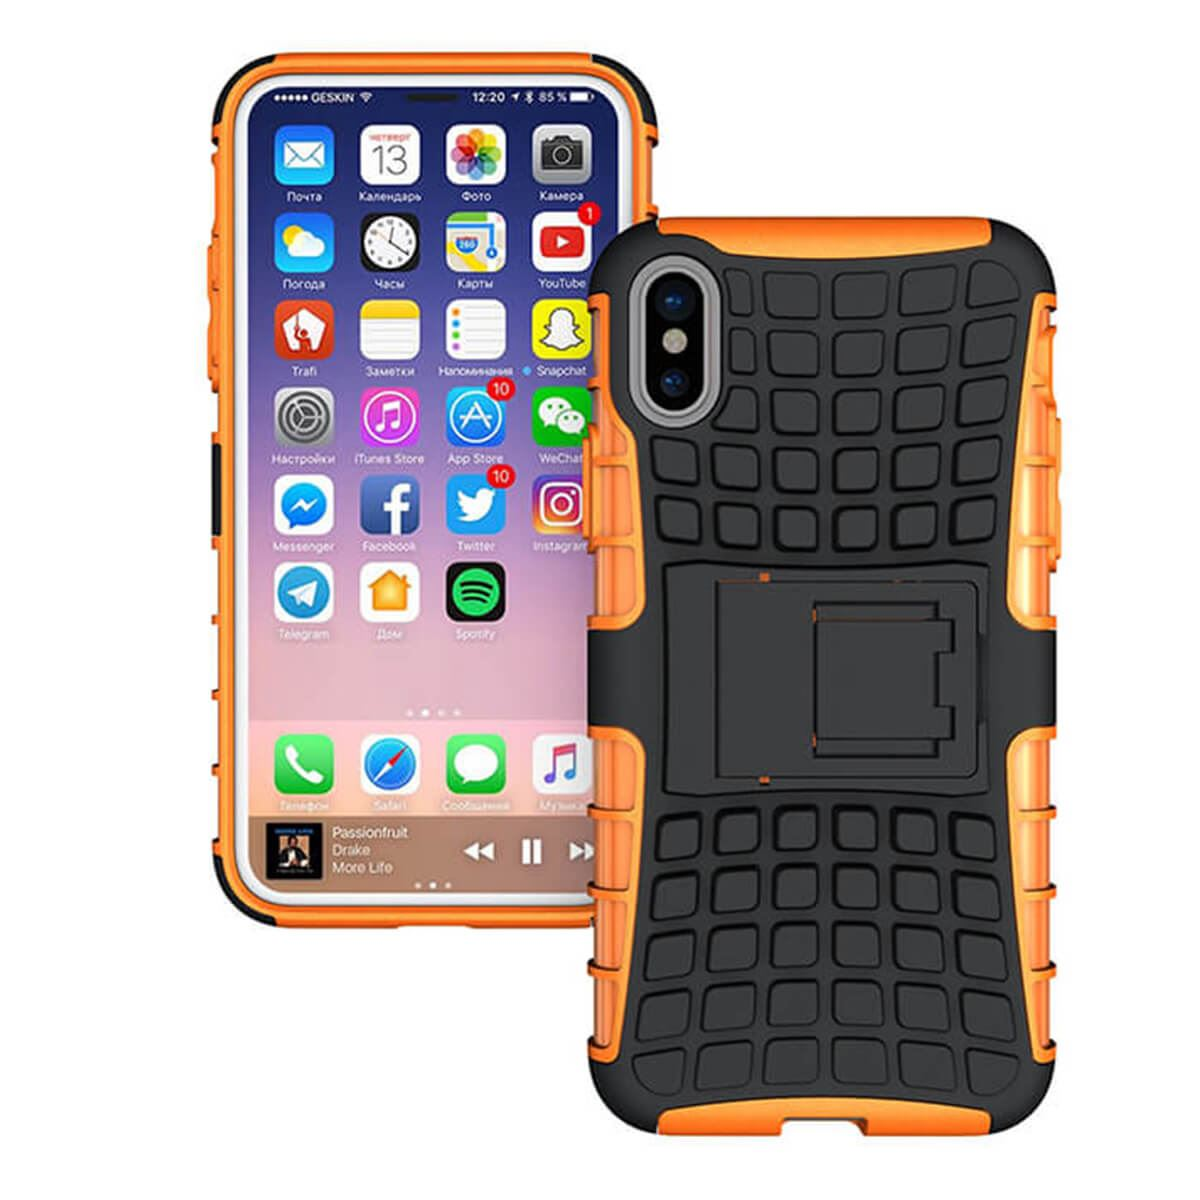 Shockproof-Case-Apple-iPhone-10-X-8-7-6s-Se-5-Hard-Heavy-Duty-Stand-Armour-Cover thumbnail 11